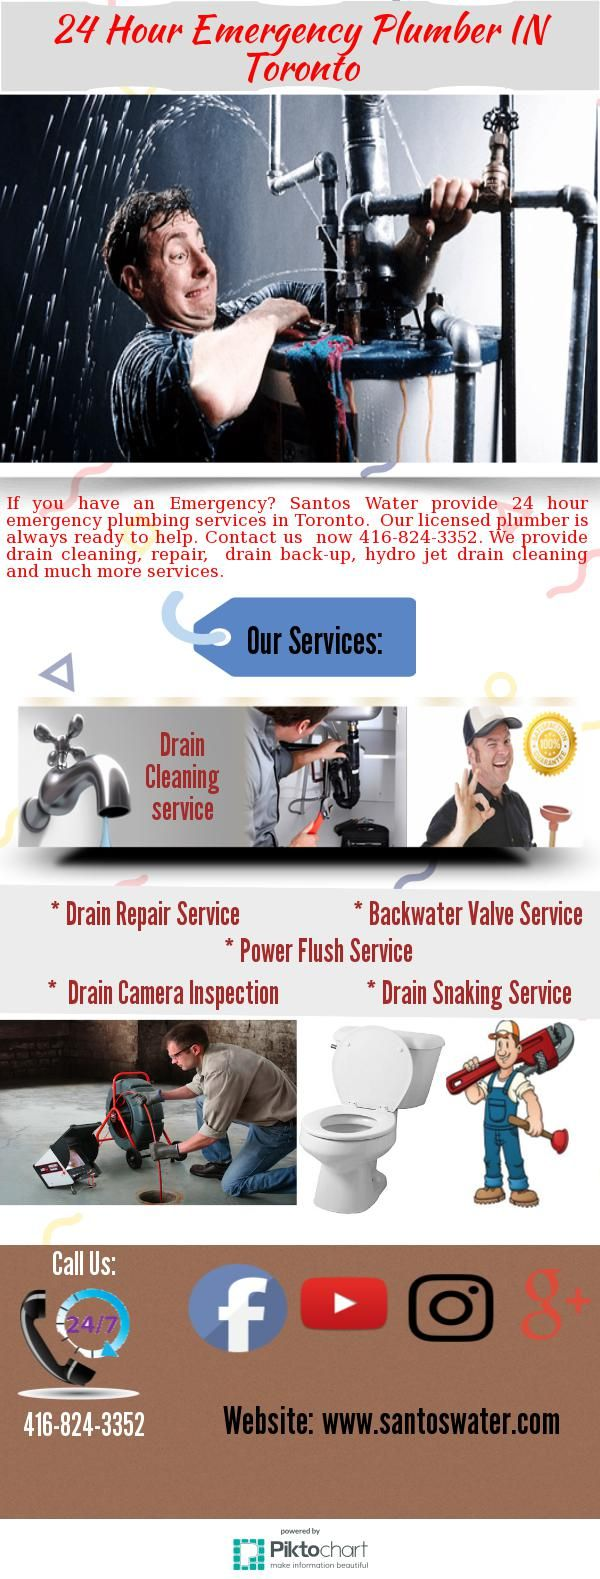 If you have an Emergency of plumbing service? Santos Water provide 24 hour emergency  plumbing services in Toronto.  Our licensed plumber is always ready to help. Contact us  now 416-824-3352.